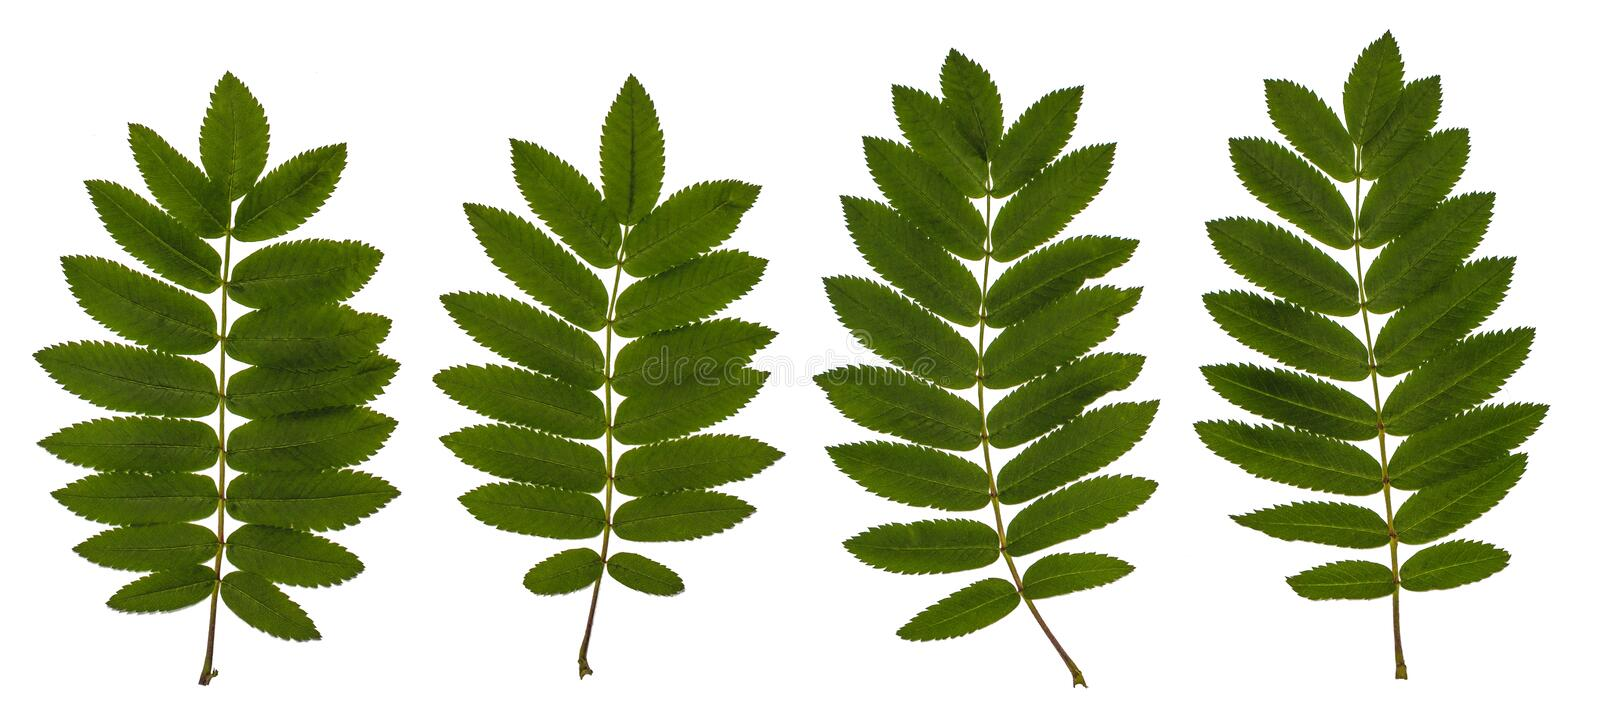 The leaves of mountain ash, red ash, Sorbus aucuparia, the Rowan set of leaves, compound leaves, leaves on a white background. Isolated, Herbology royalty free stock photography